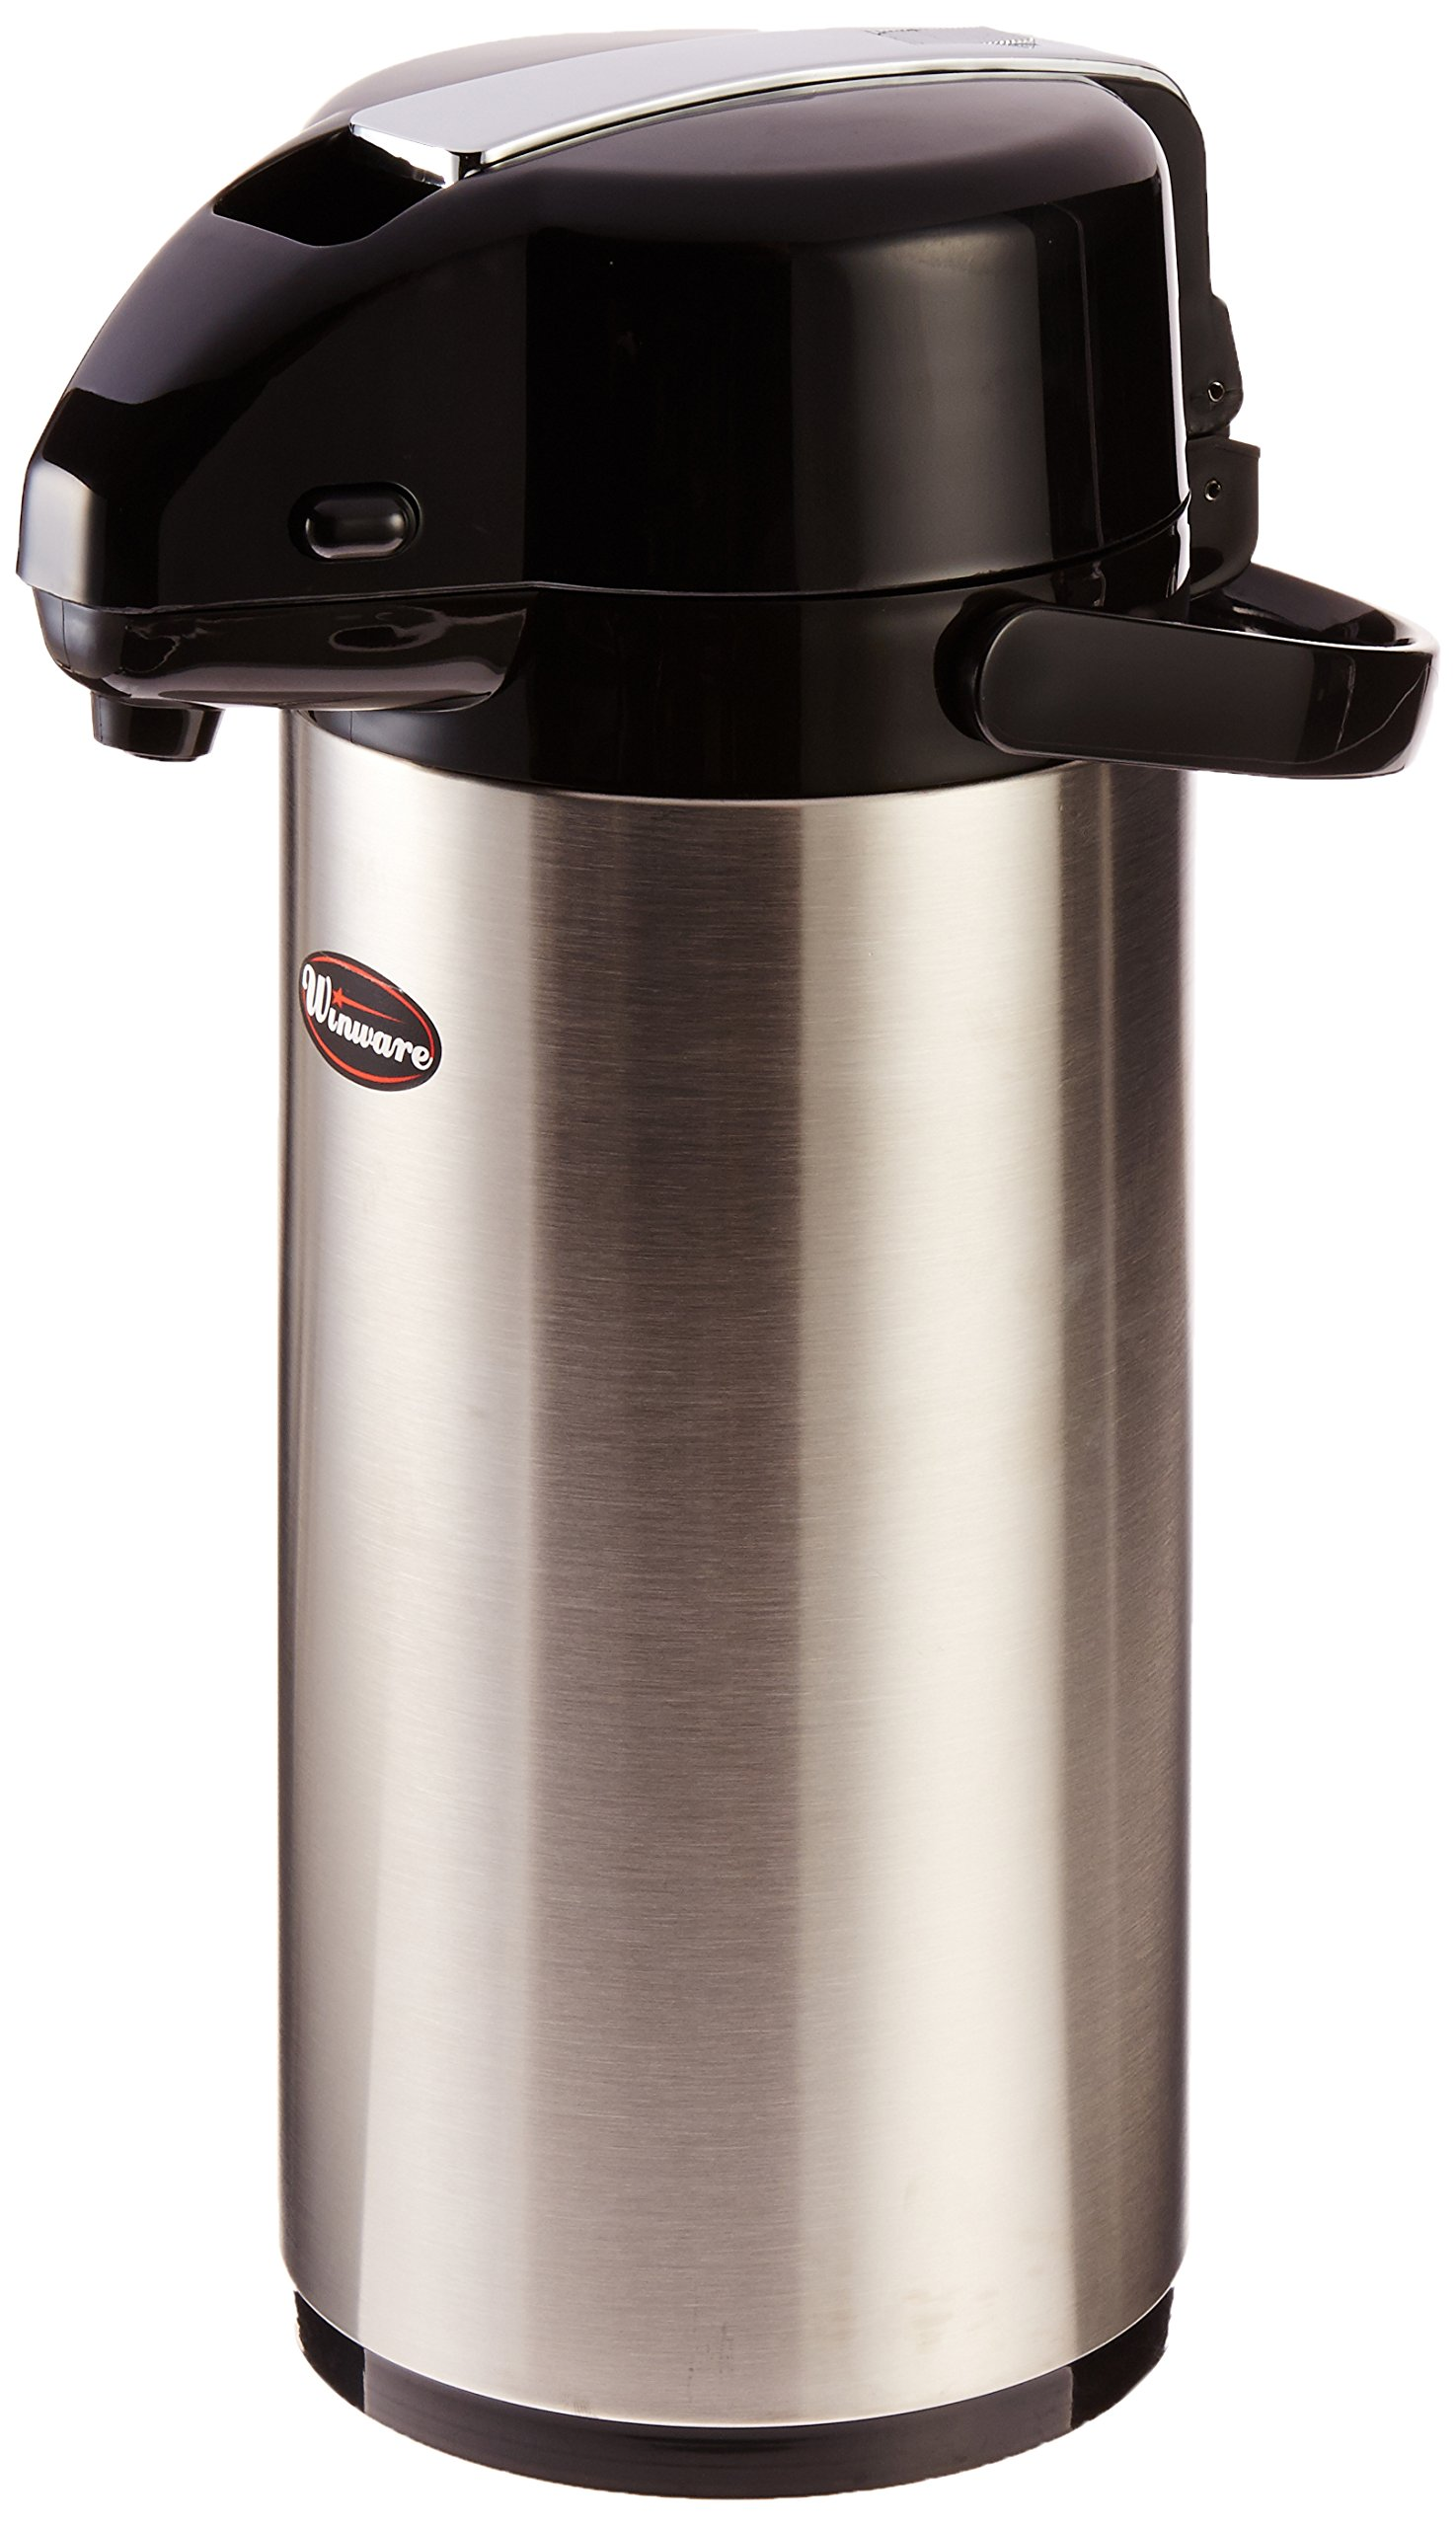 Winco Stainless Steel Lined Airpot, 2.5-Liter, Lever Top